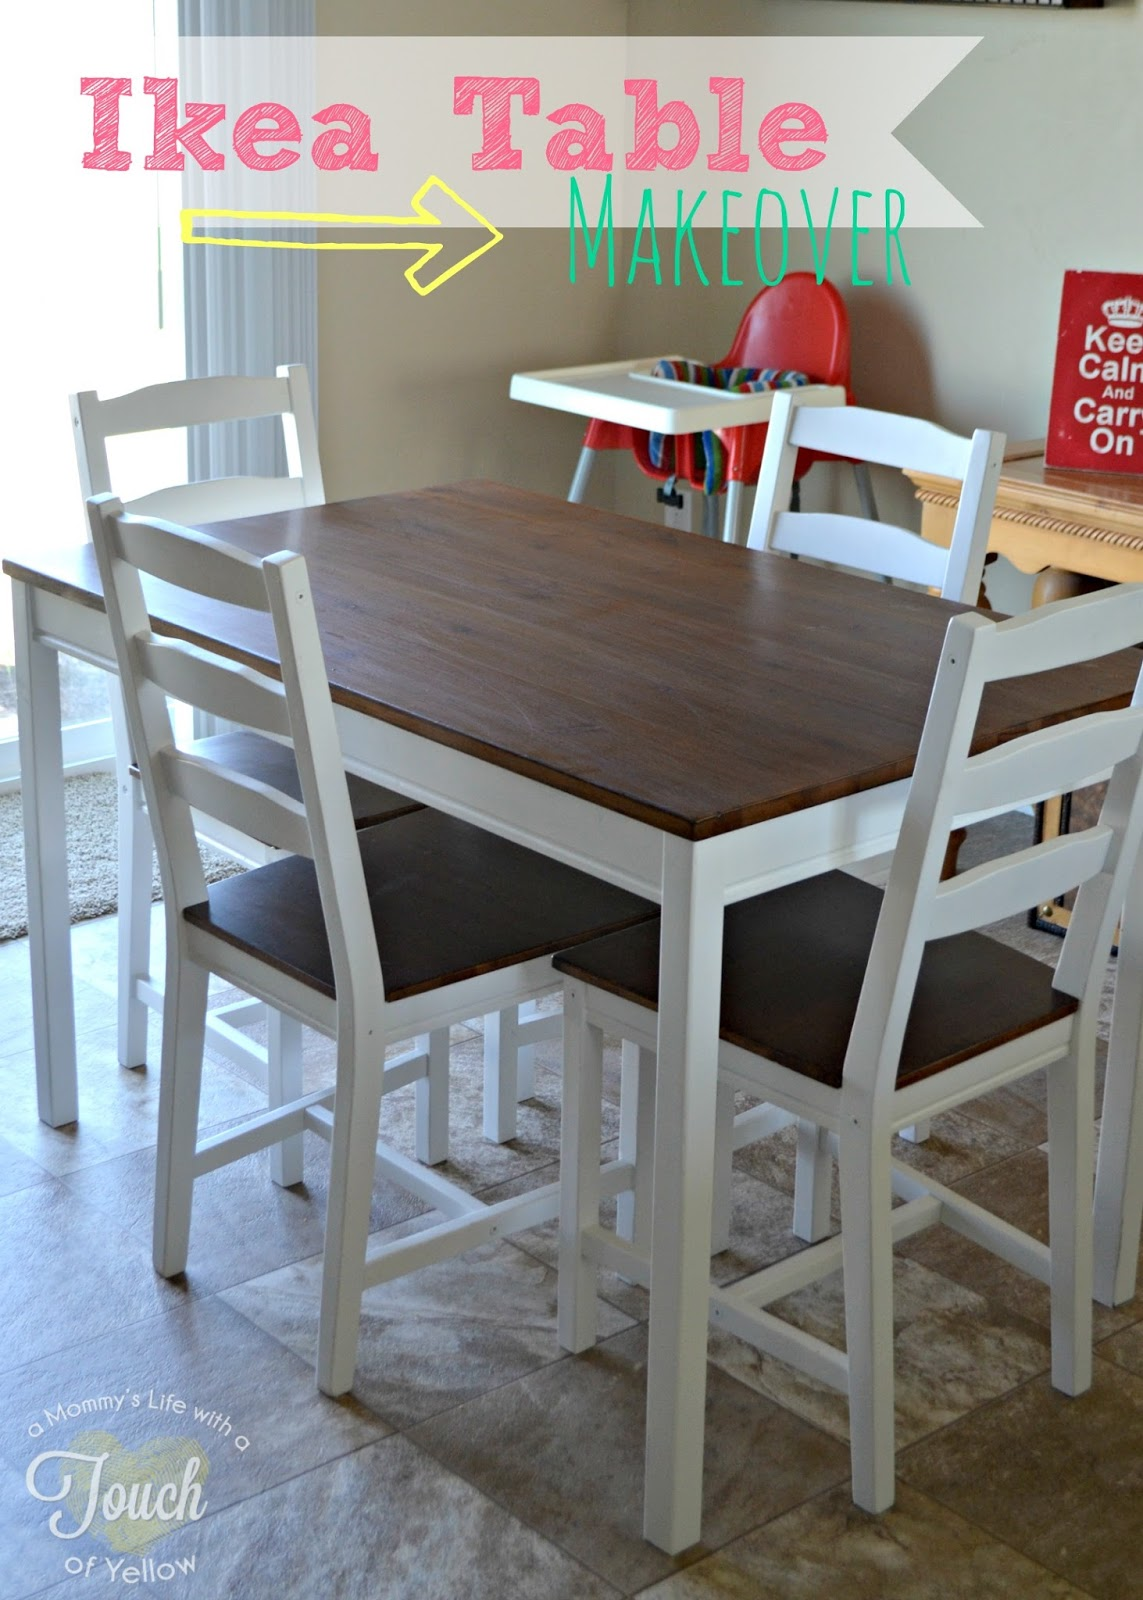 ikea kitchen table makeover tutorial refinish kitchen table Ikea Kitchen Table Makeover Tutorial